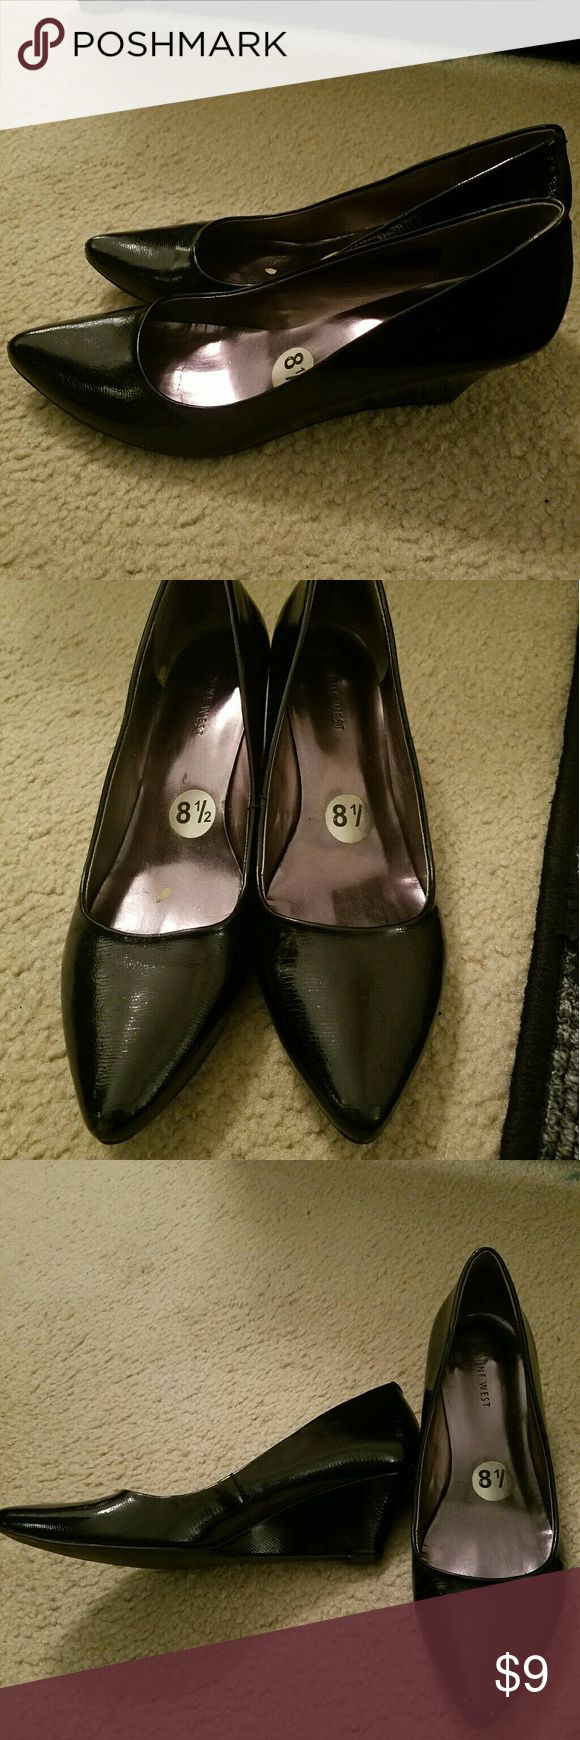 Nine west pointed wedge black 8.5 Gently worn, has lot of life left. Perfect shine and condition. No visible imperfections Nine West Shoes Wedges